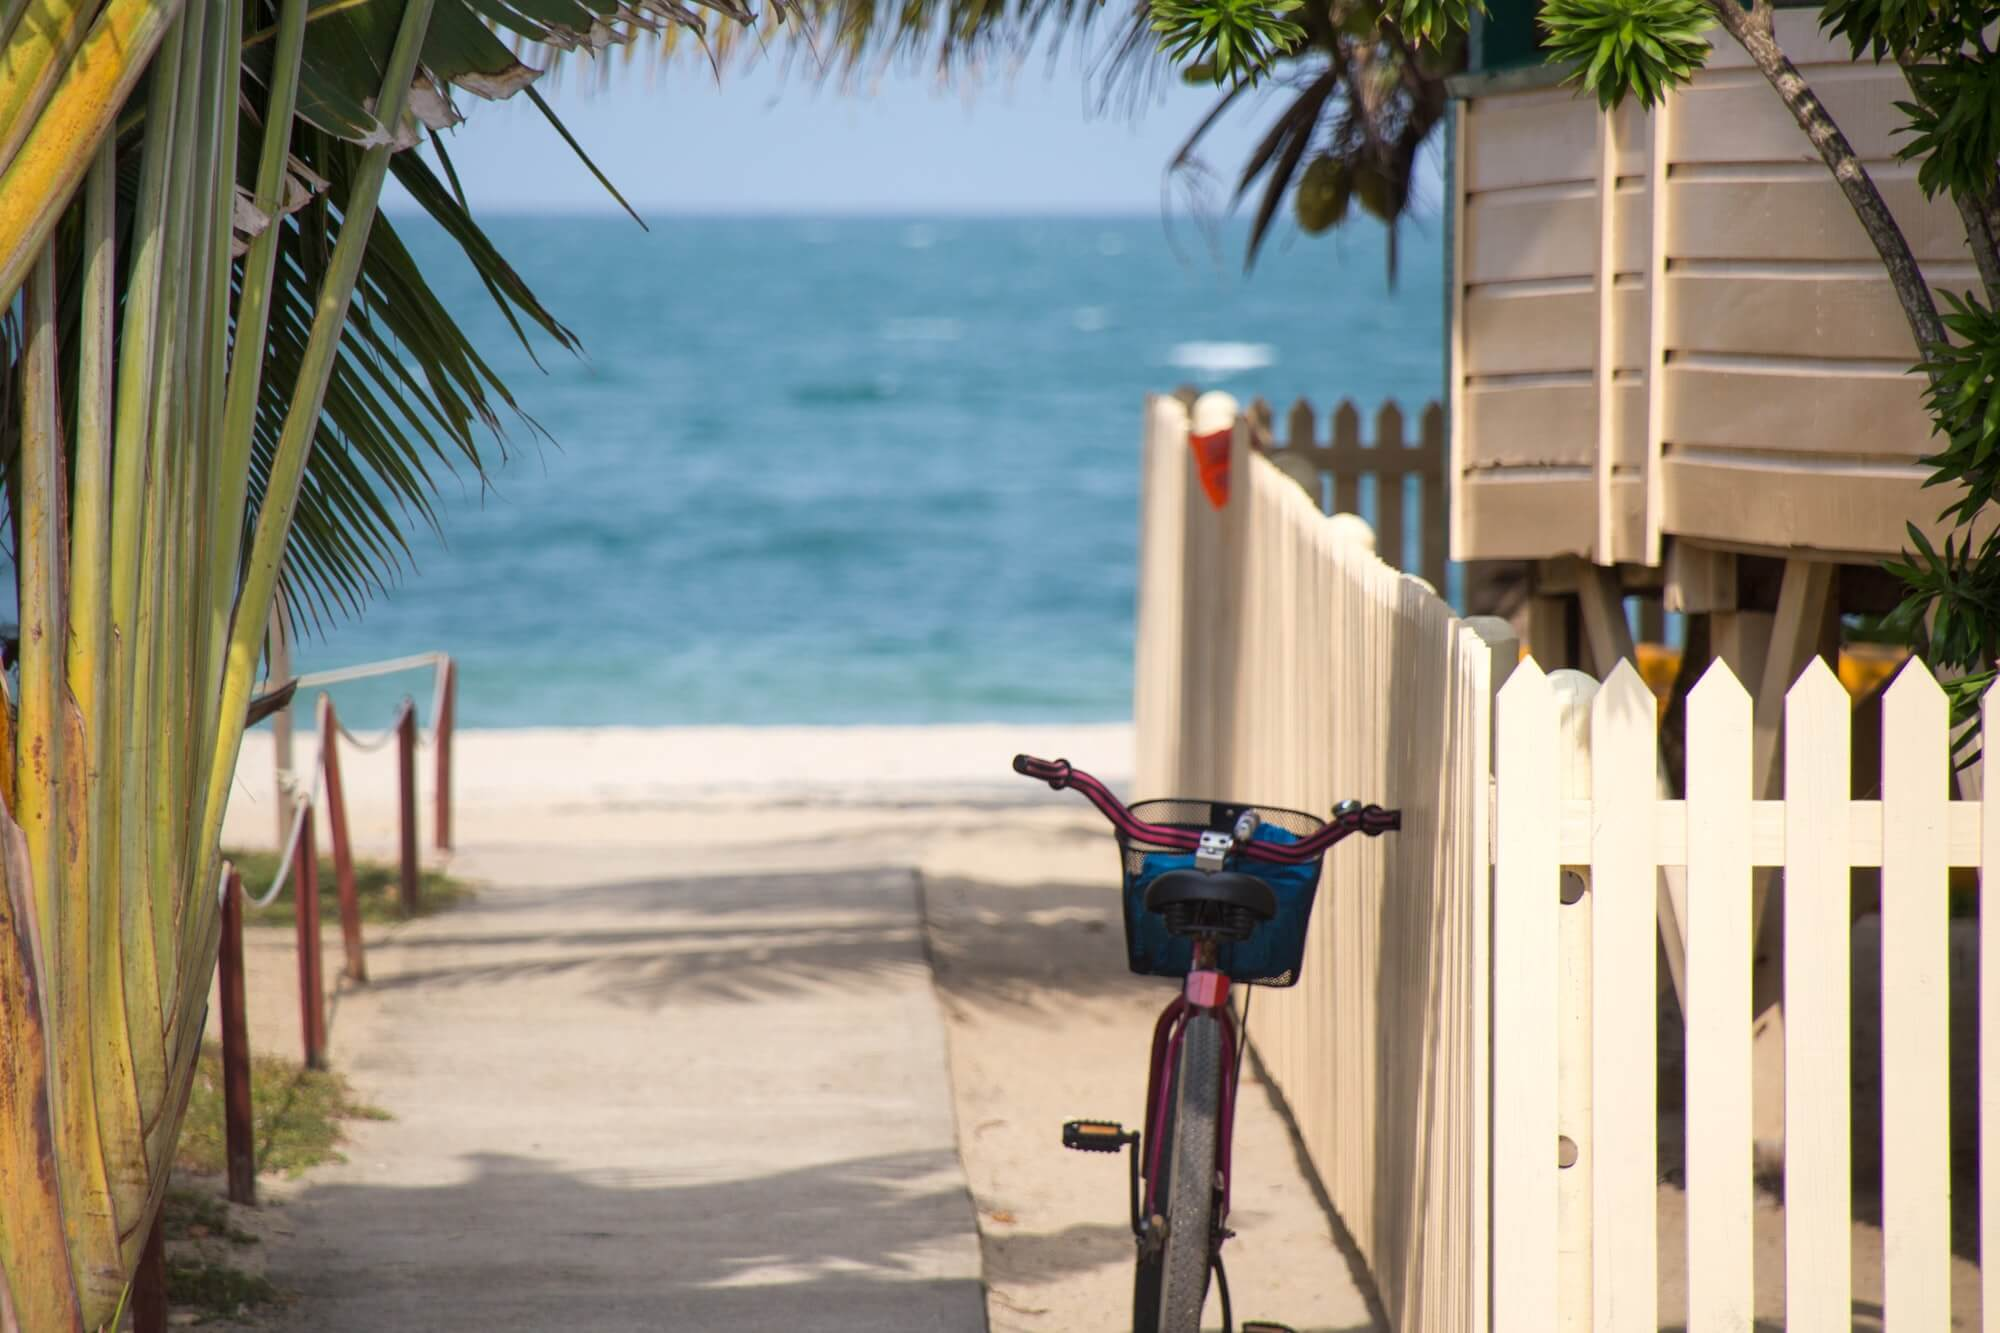 Key West, Florida: A cute beach bicycle rests against a beach house fence, facing the sea and a sandy beach somewhere in the Florida Keys. This image first appeared on https://www.florida-guidebook.com/key-west/